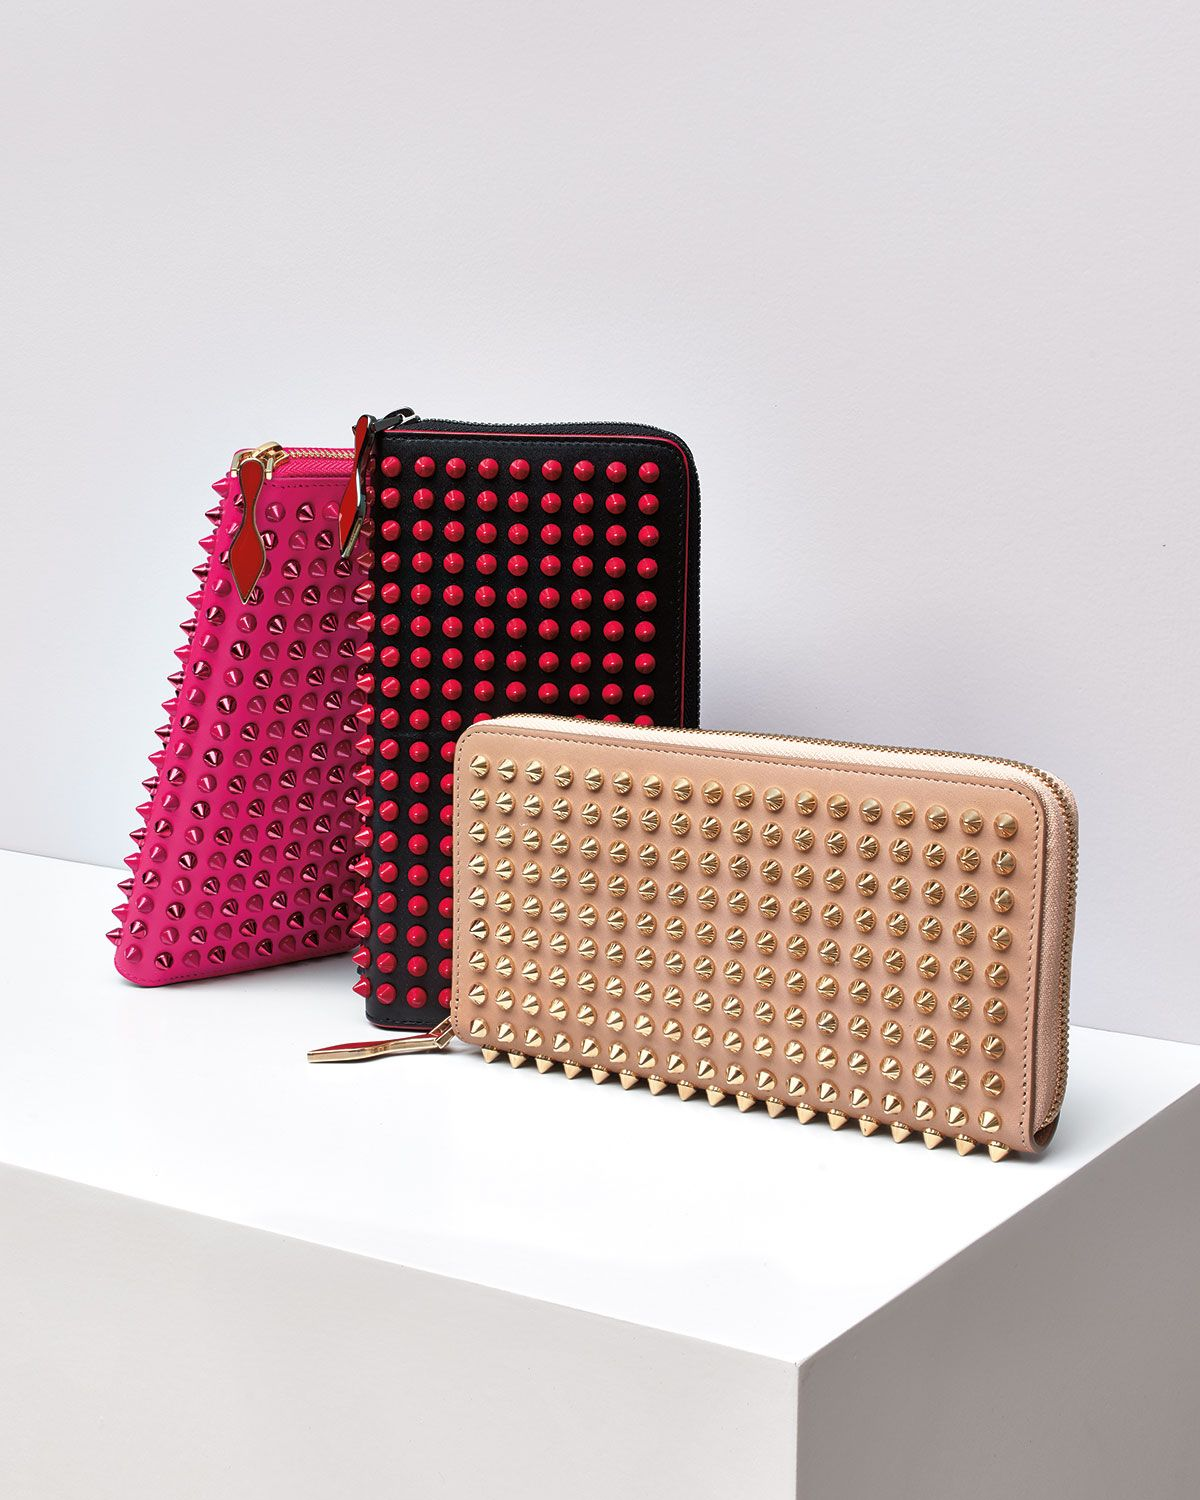 3c95080c168 Christian Louboutin Panettone Spike Stud Continental Wallets | The ...